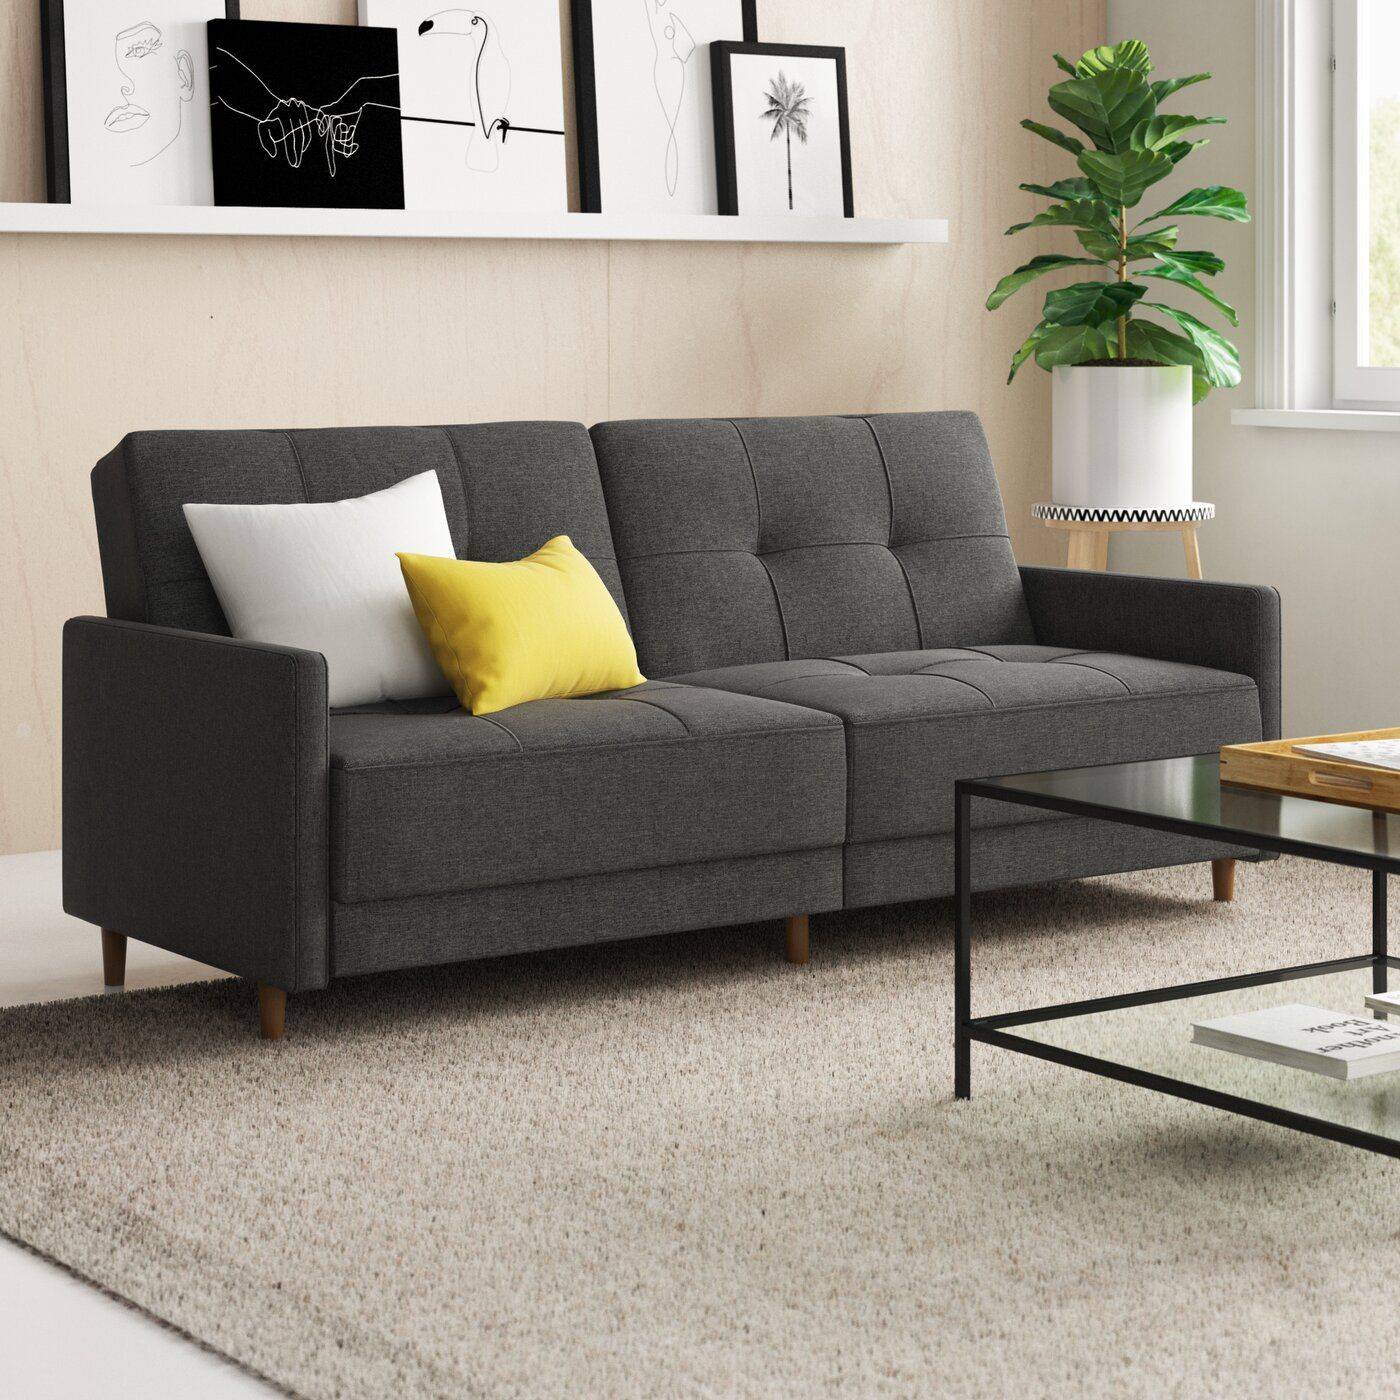 Pleasing Geraldton Linen Convertible Sofa In 2019 Living Room Pdpeps Interior Chair Design Pdpepsorg